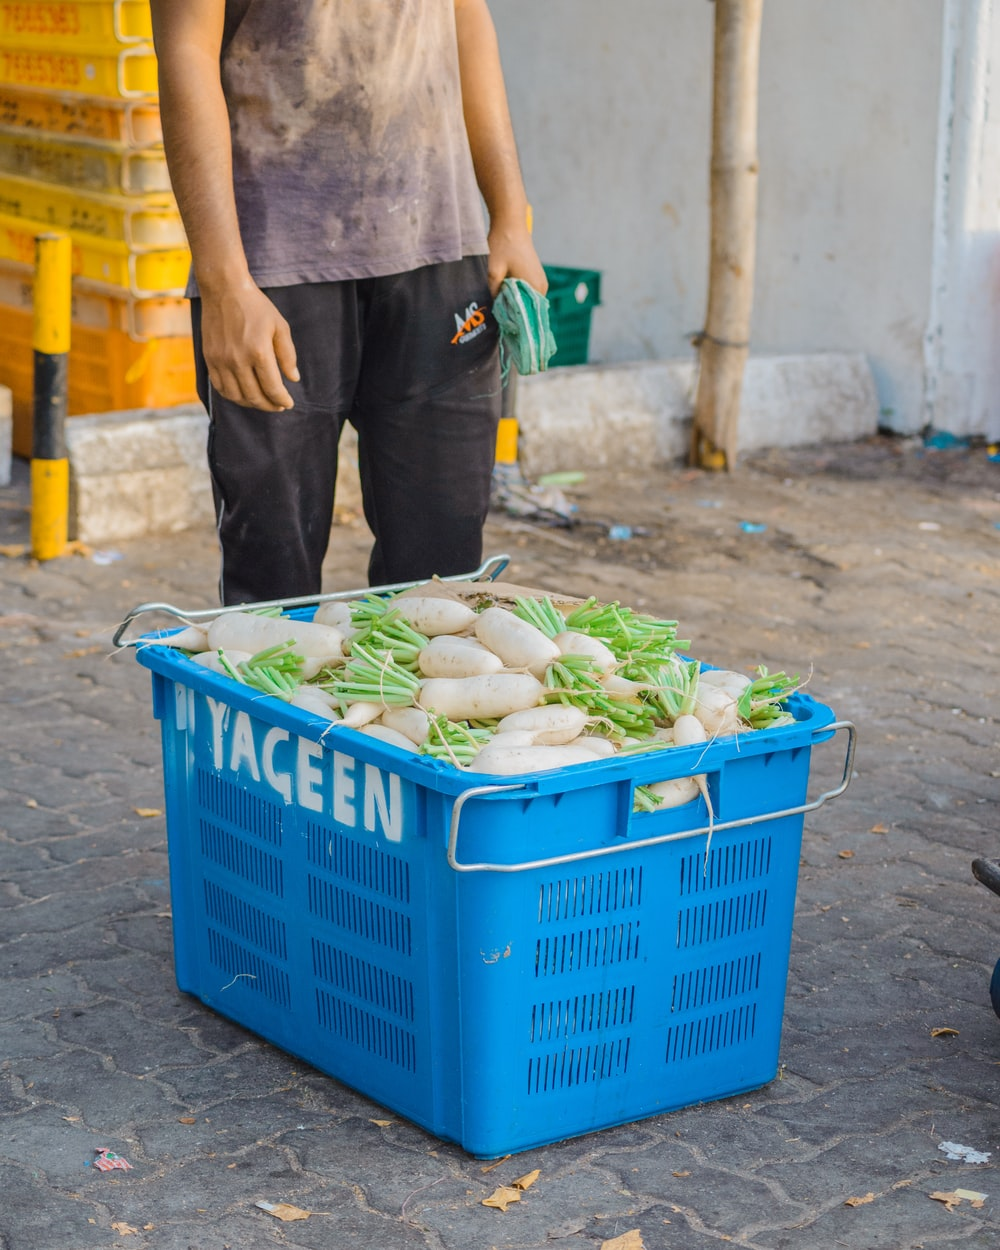 white radish in a blue plastic container